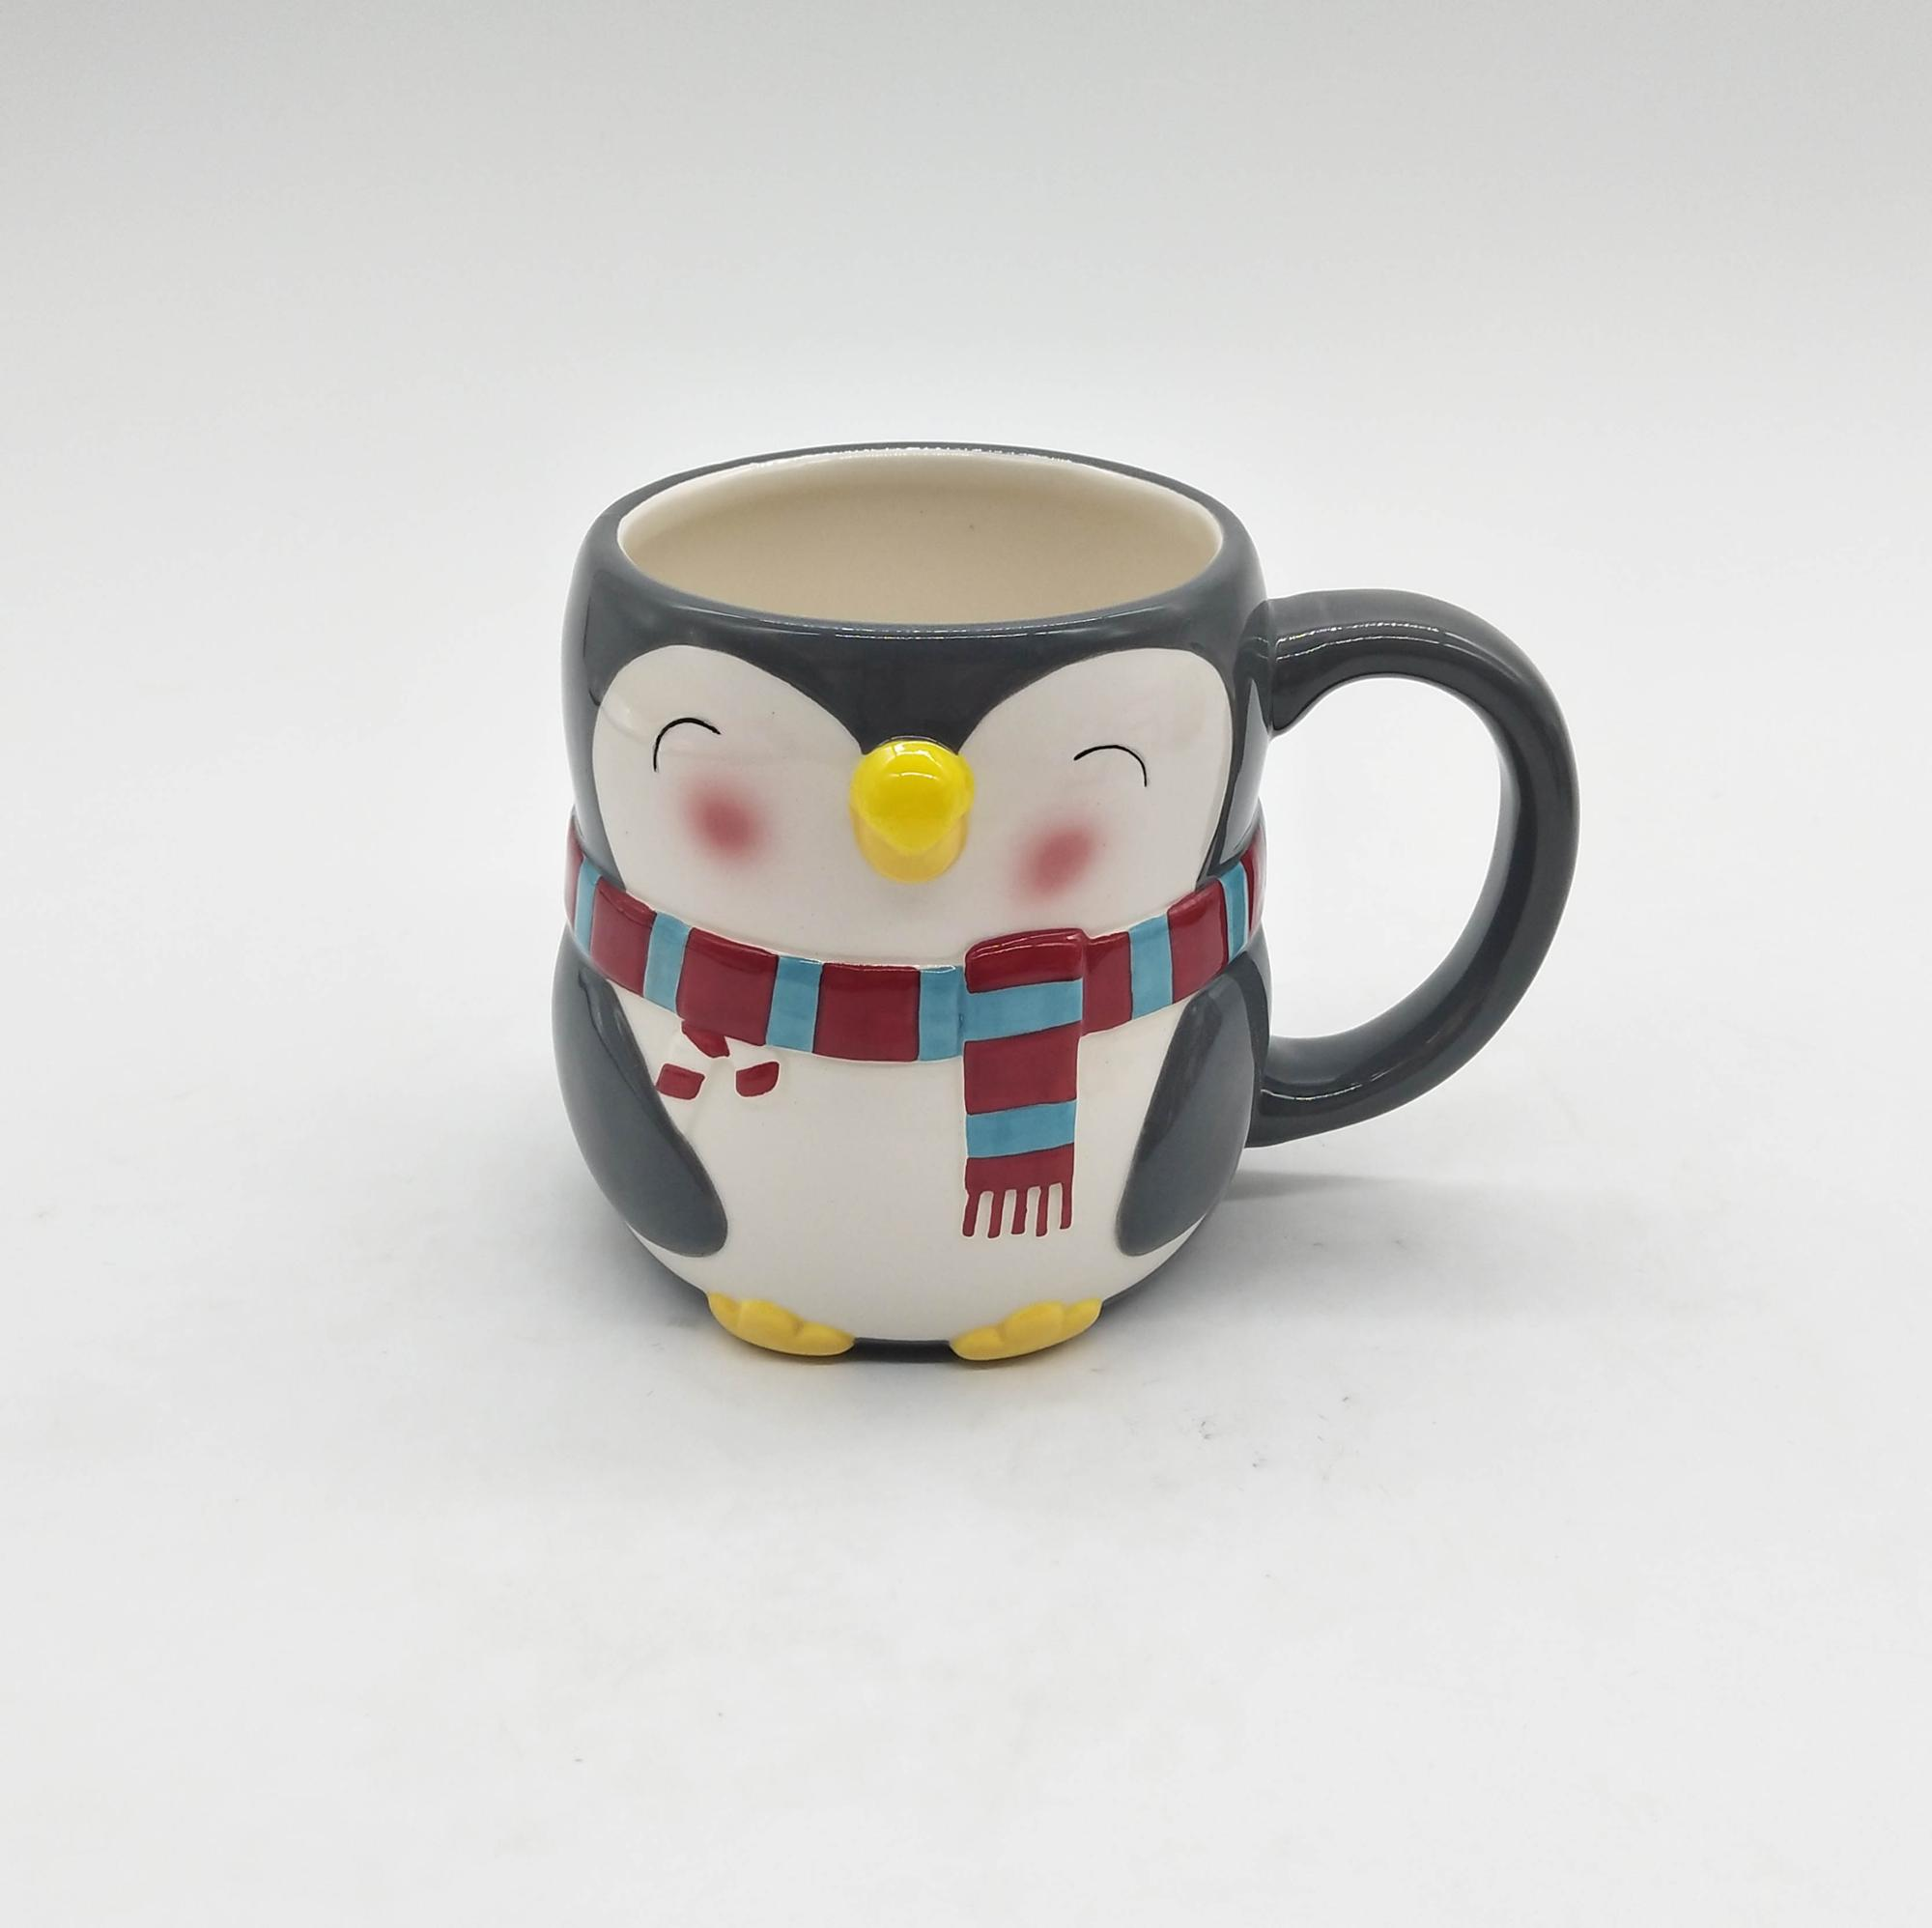 Mugs Penguin Ceramic Made cheap Mugs Coffee Hand Painted For Christmas Custom Buy Design OPXn08wk